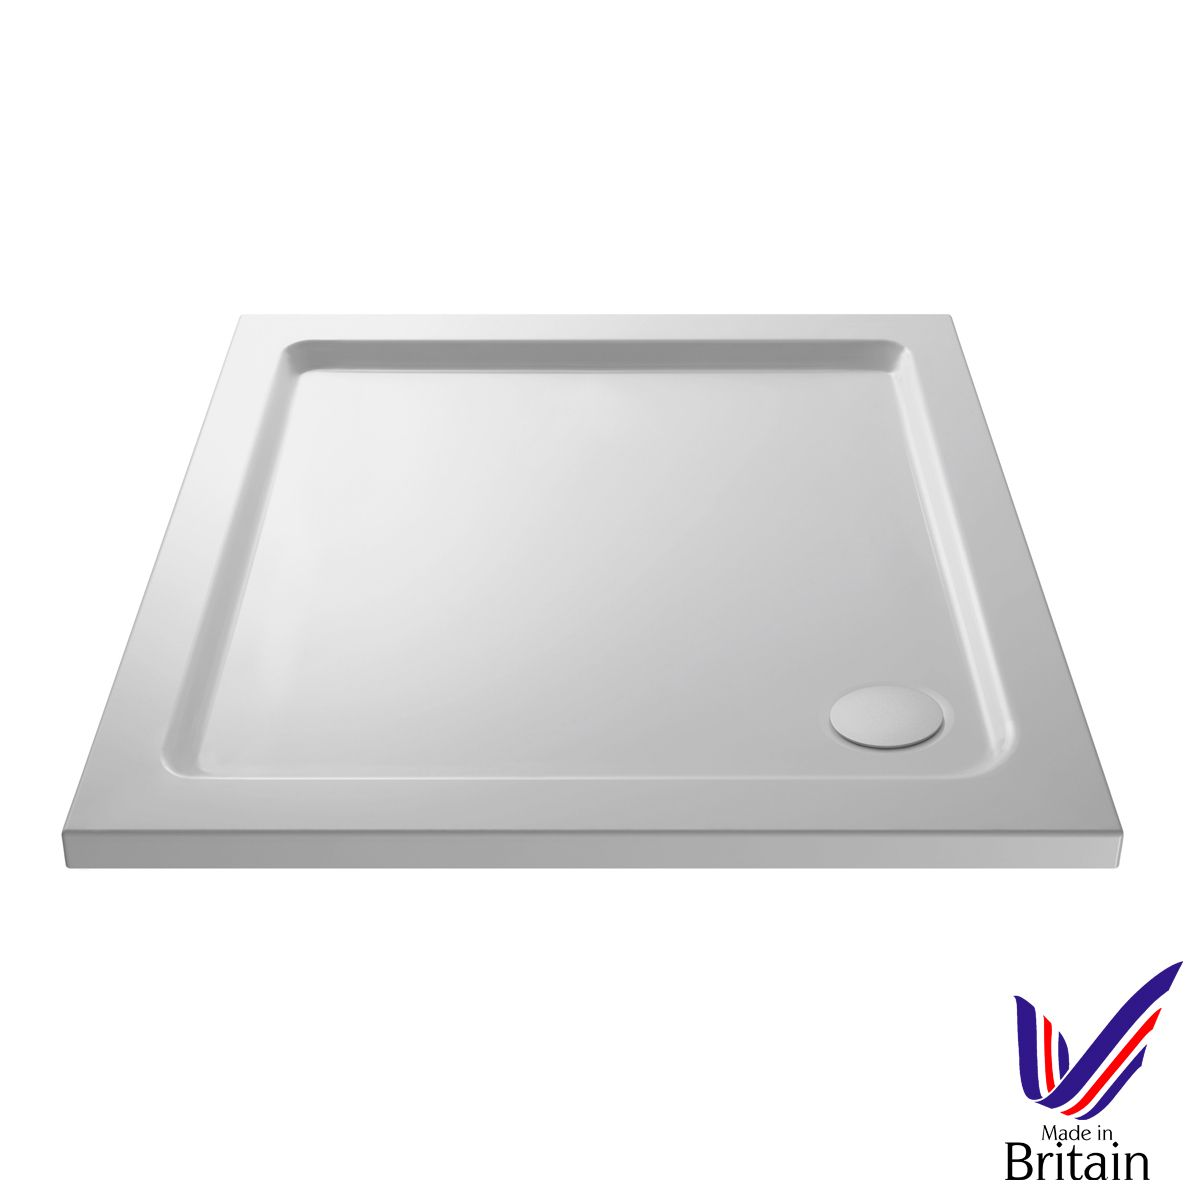 760 x 760 Shower Tray Square Low Profile by Pearlstone